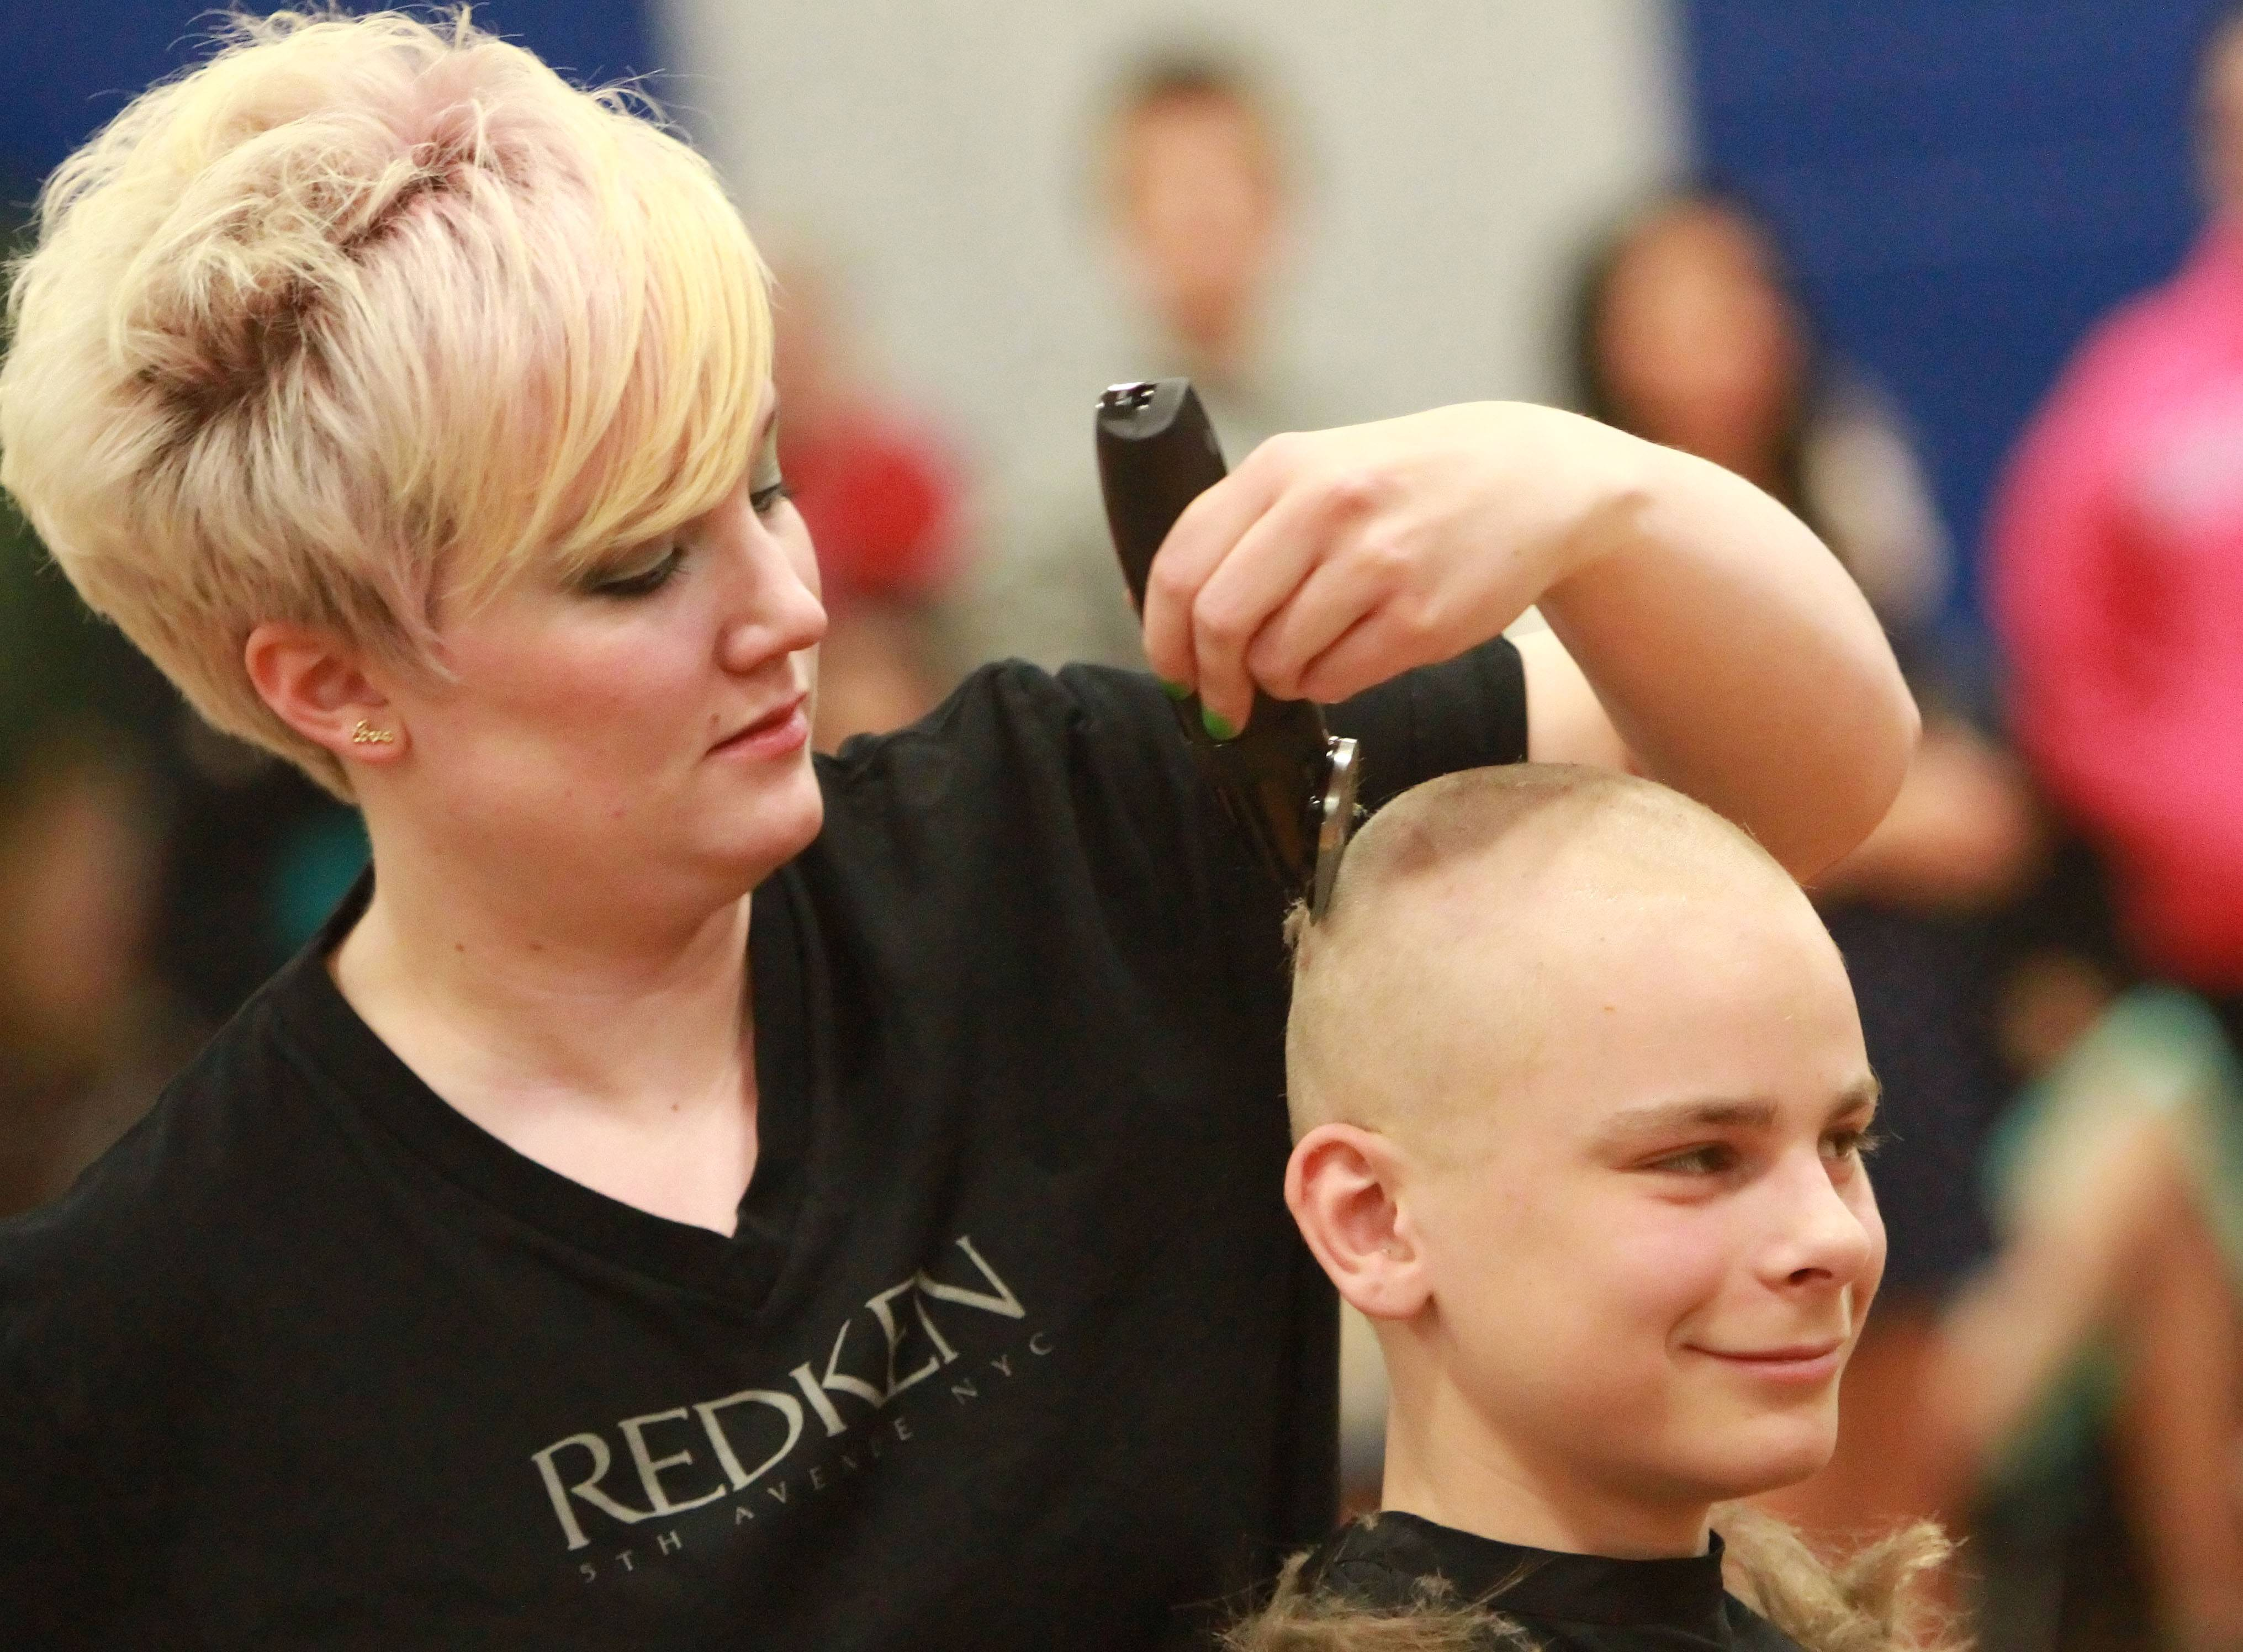 Mike Przybylski, 14, gets his head shaved Thursday by stylist Pam Meliksetyan of Legacy salon. spa during a St. Baldrick's assembly at Grayslake Middle School.